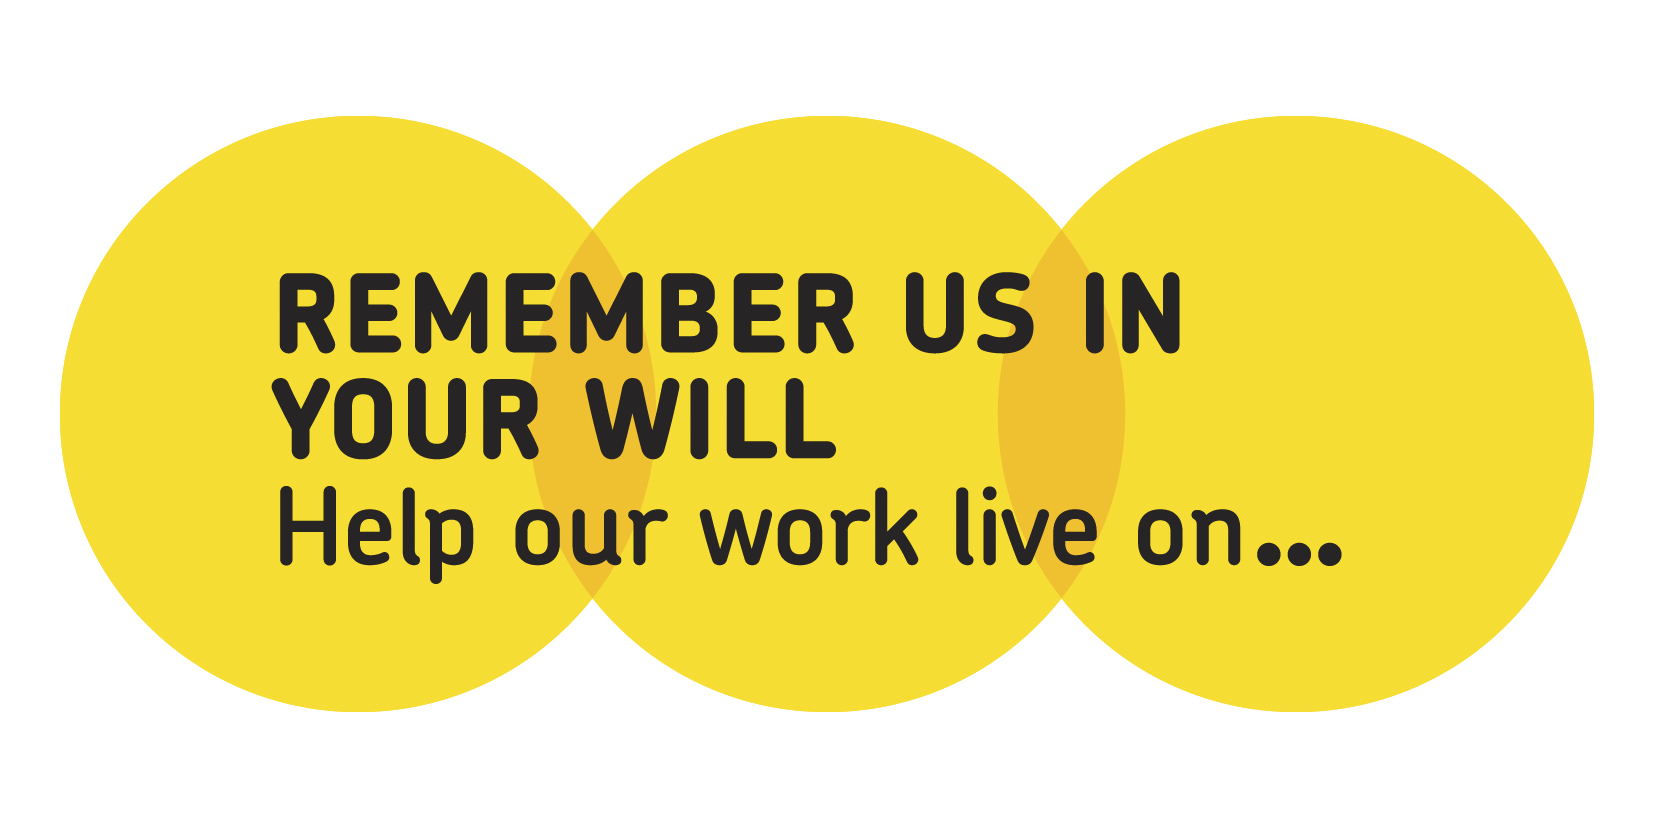 It reads 'Remember us in your will. Help our work live on...'